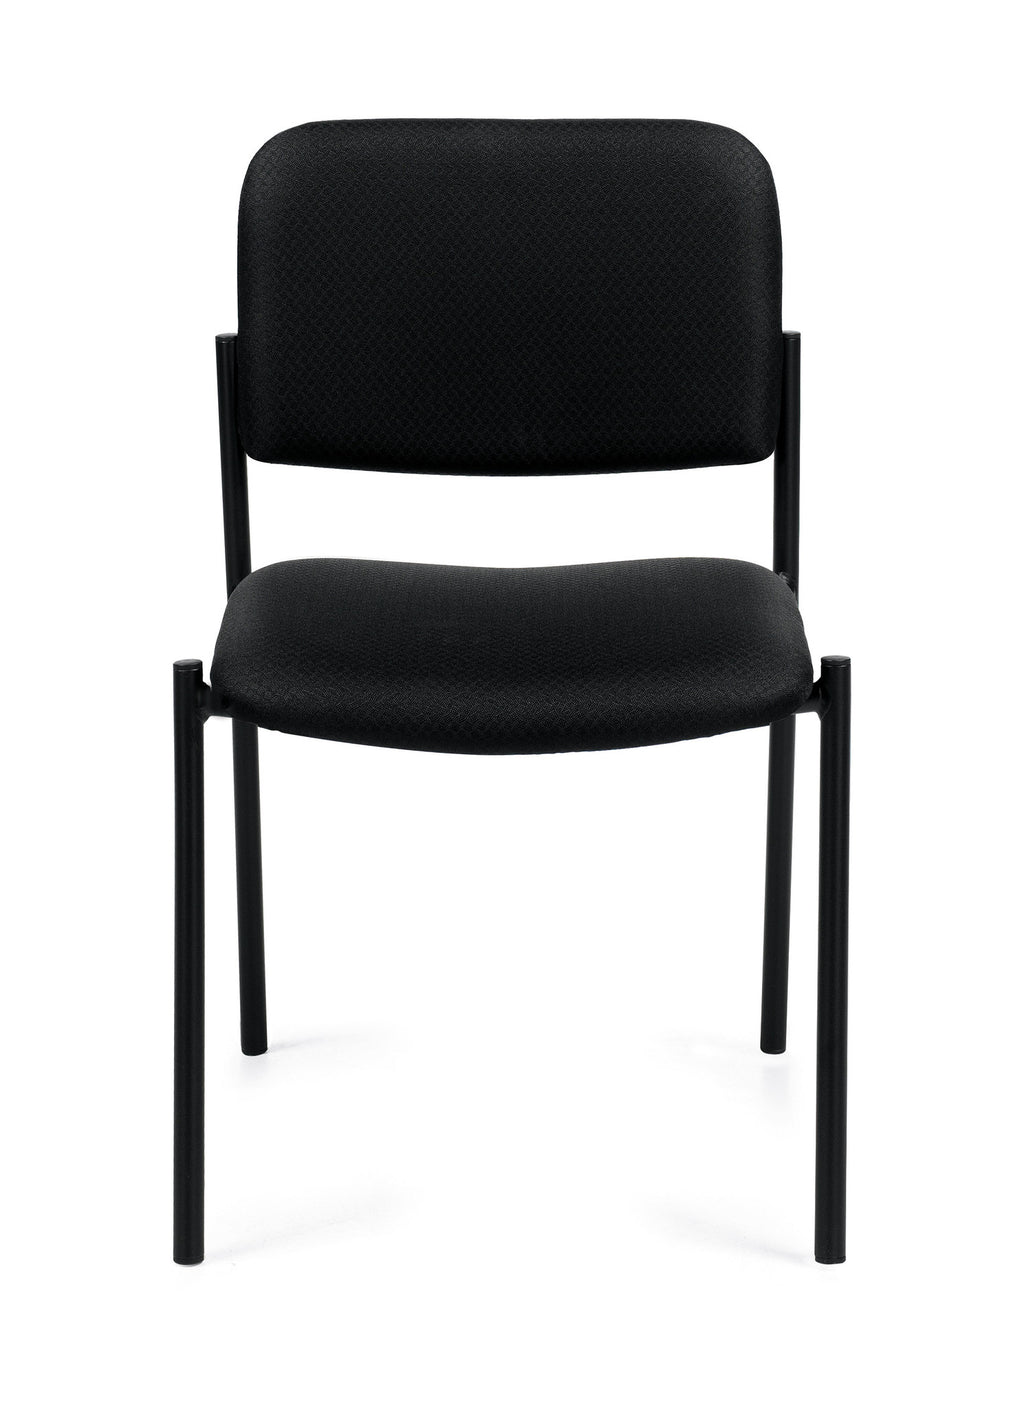 OTG 2748 Guest Chair